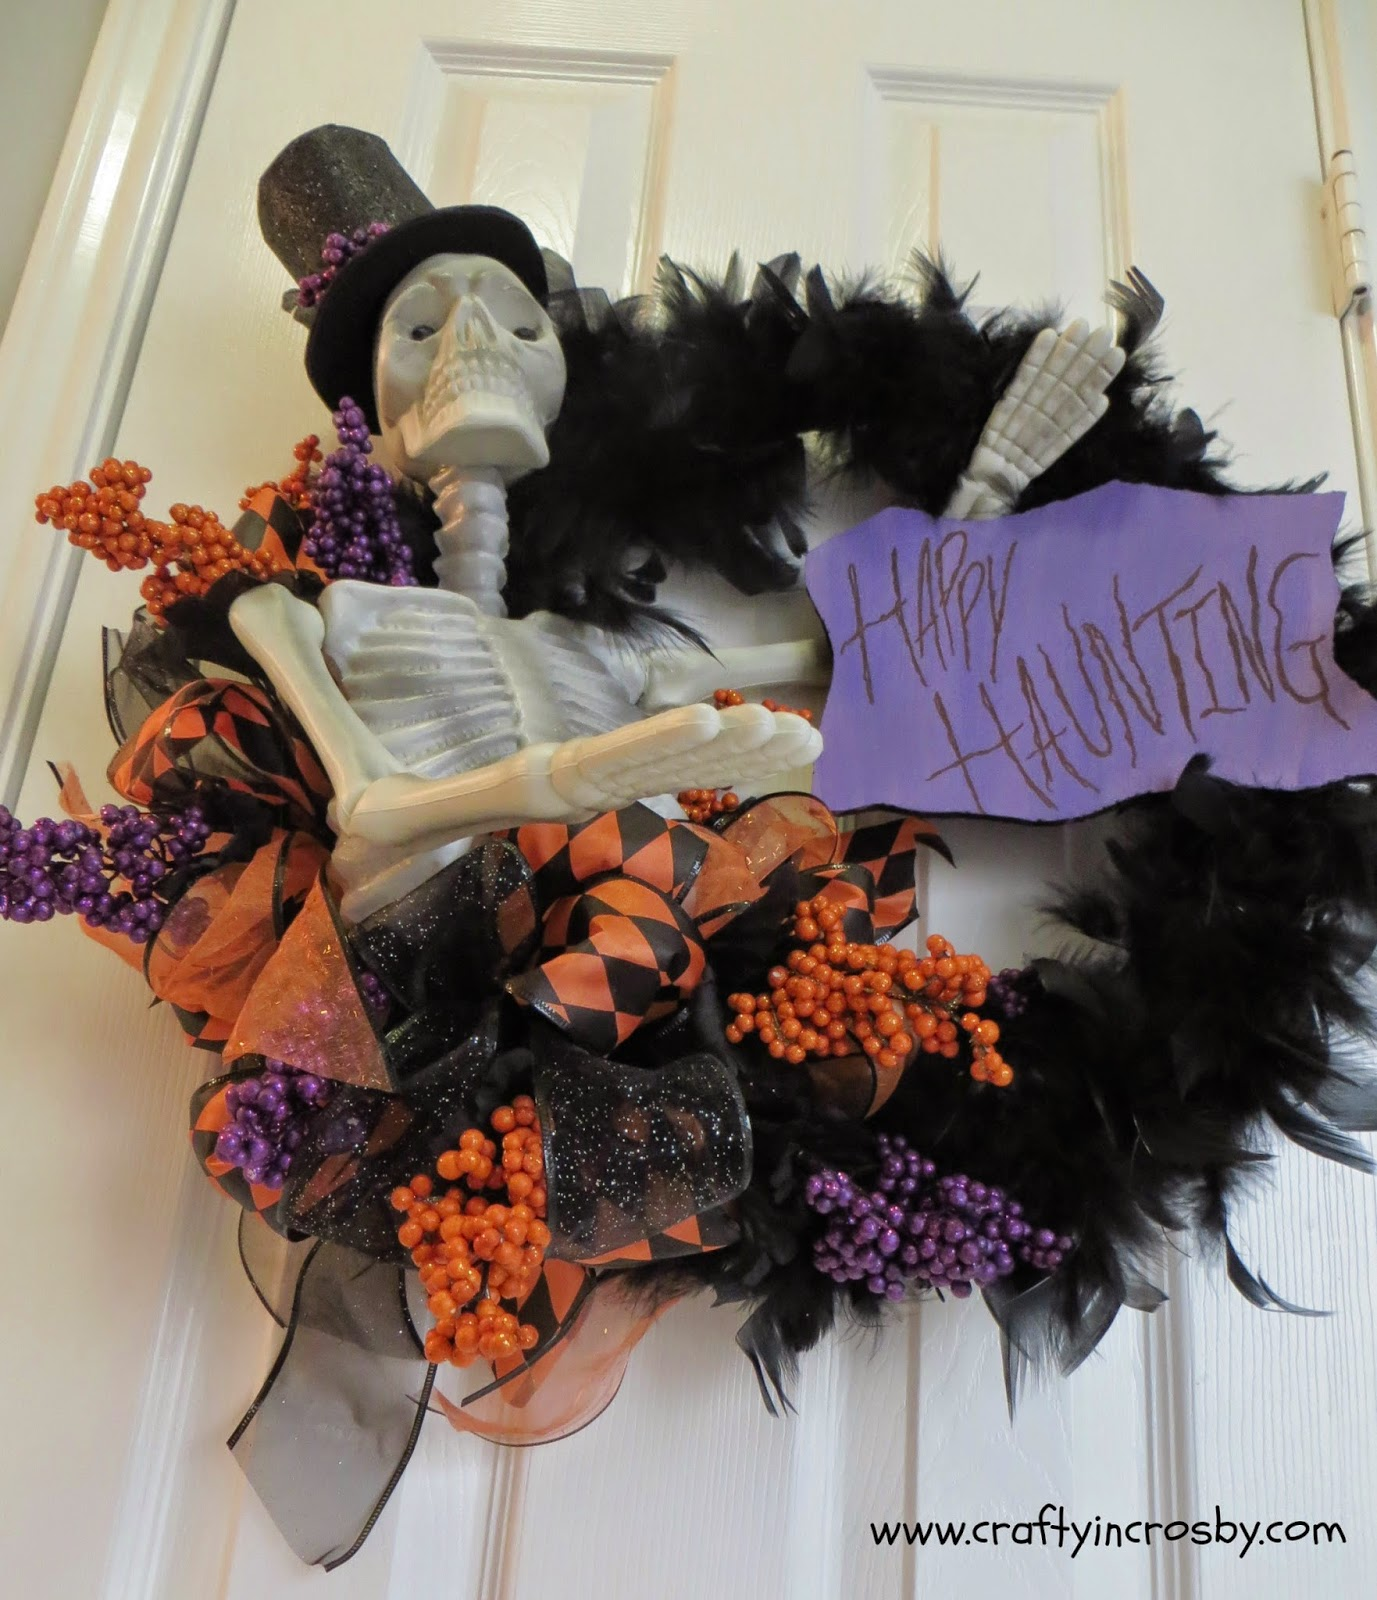 Halloween Chair Covers Dollar Tree Swivel Rocking With Ottoman Crafty In Crosby Grandinroad Wreath Knock Off